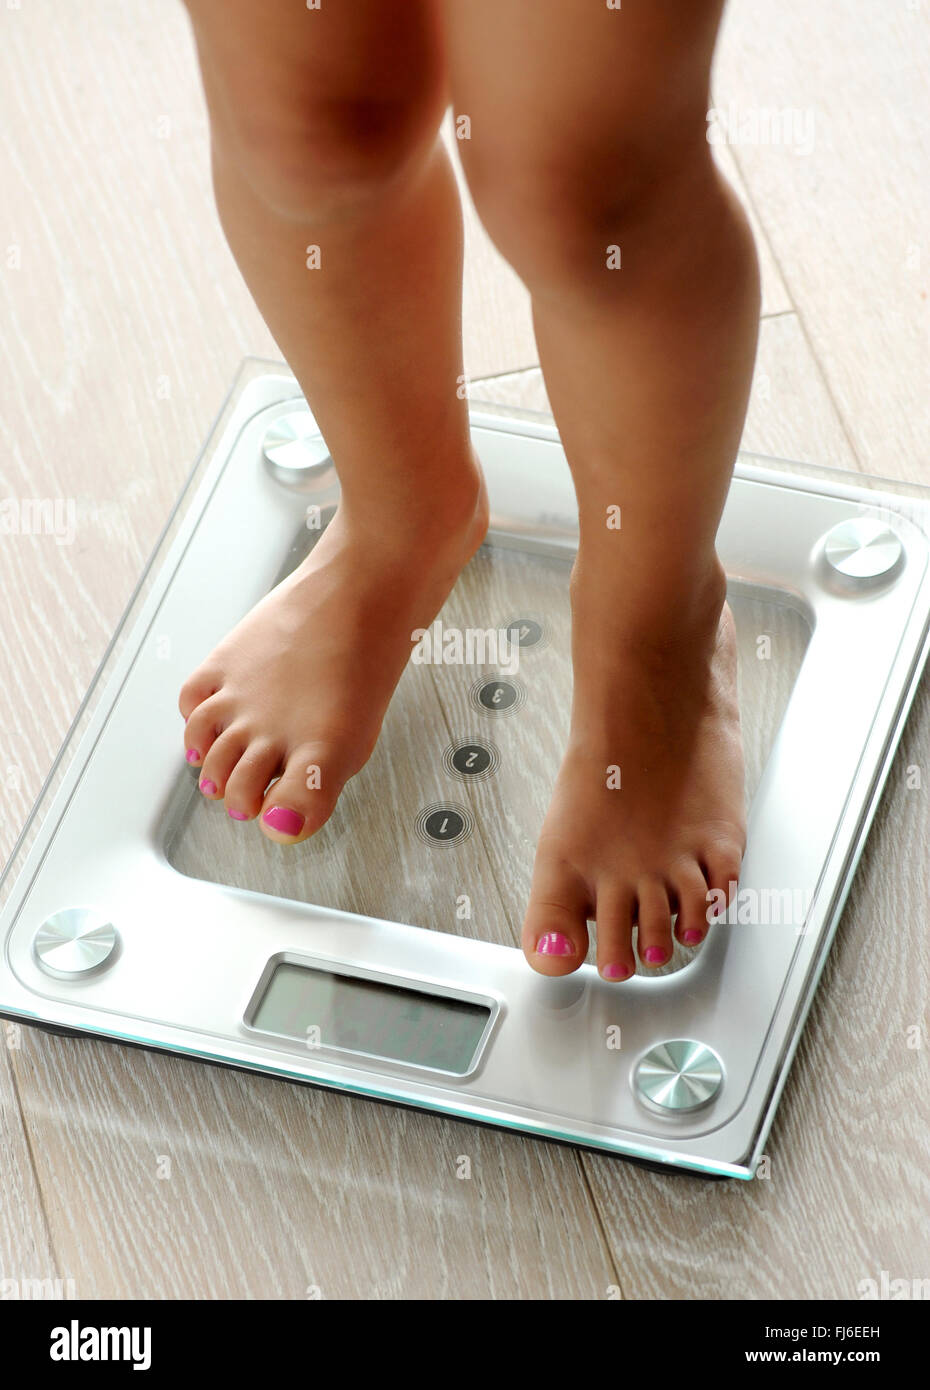 Barefoot woman with manicured toenails standing on a modern glass electronic bathroom scale as she checks her weight - Stock Image